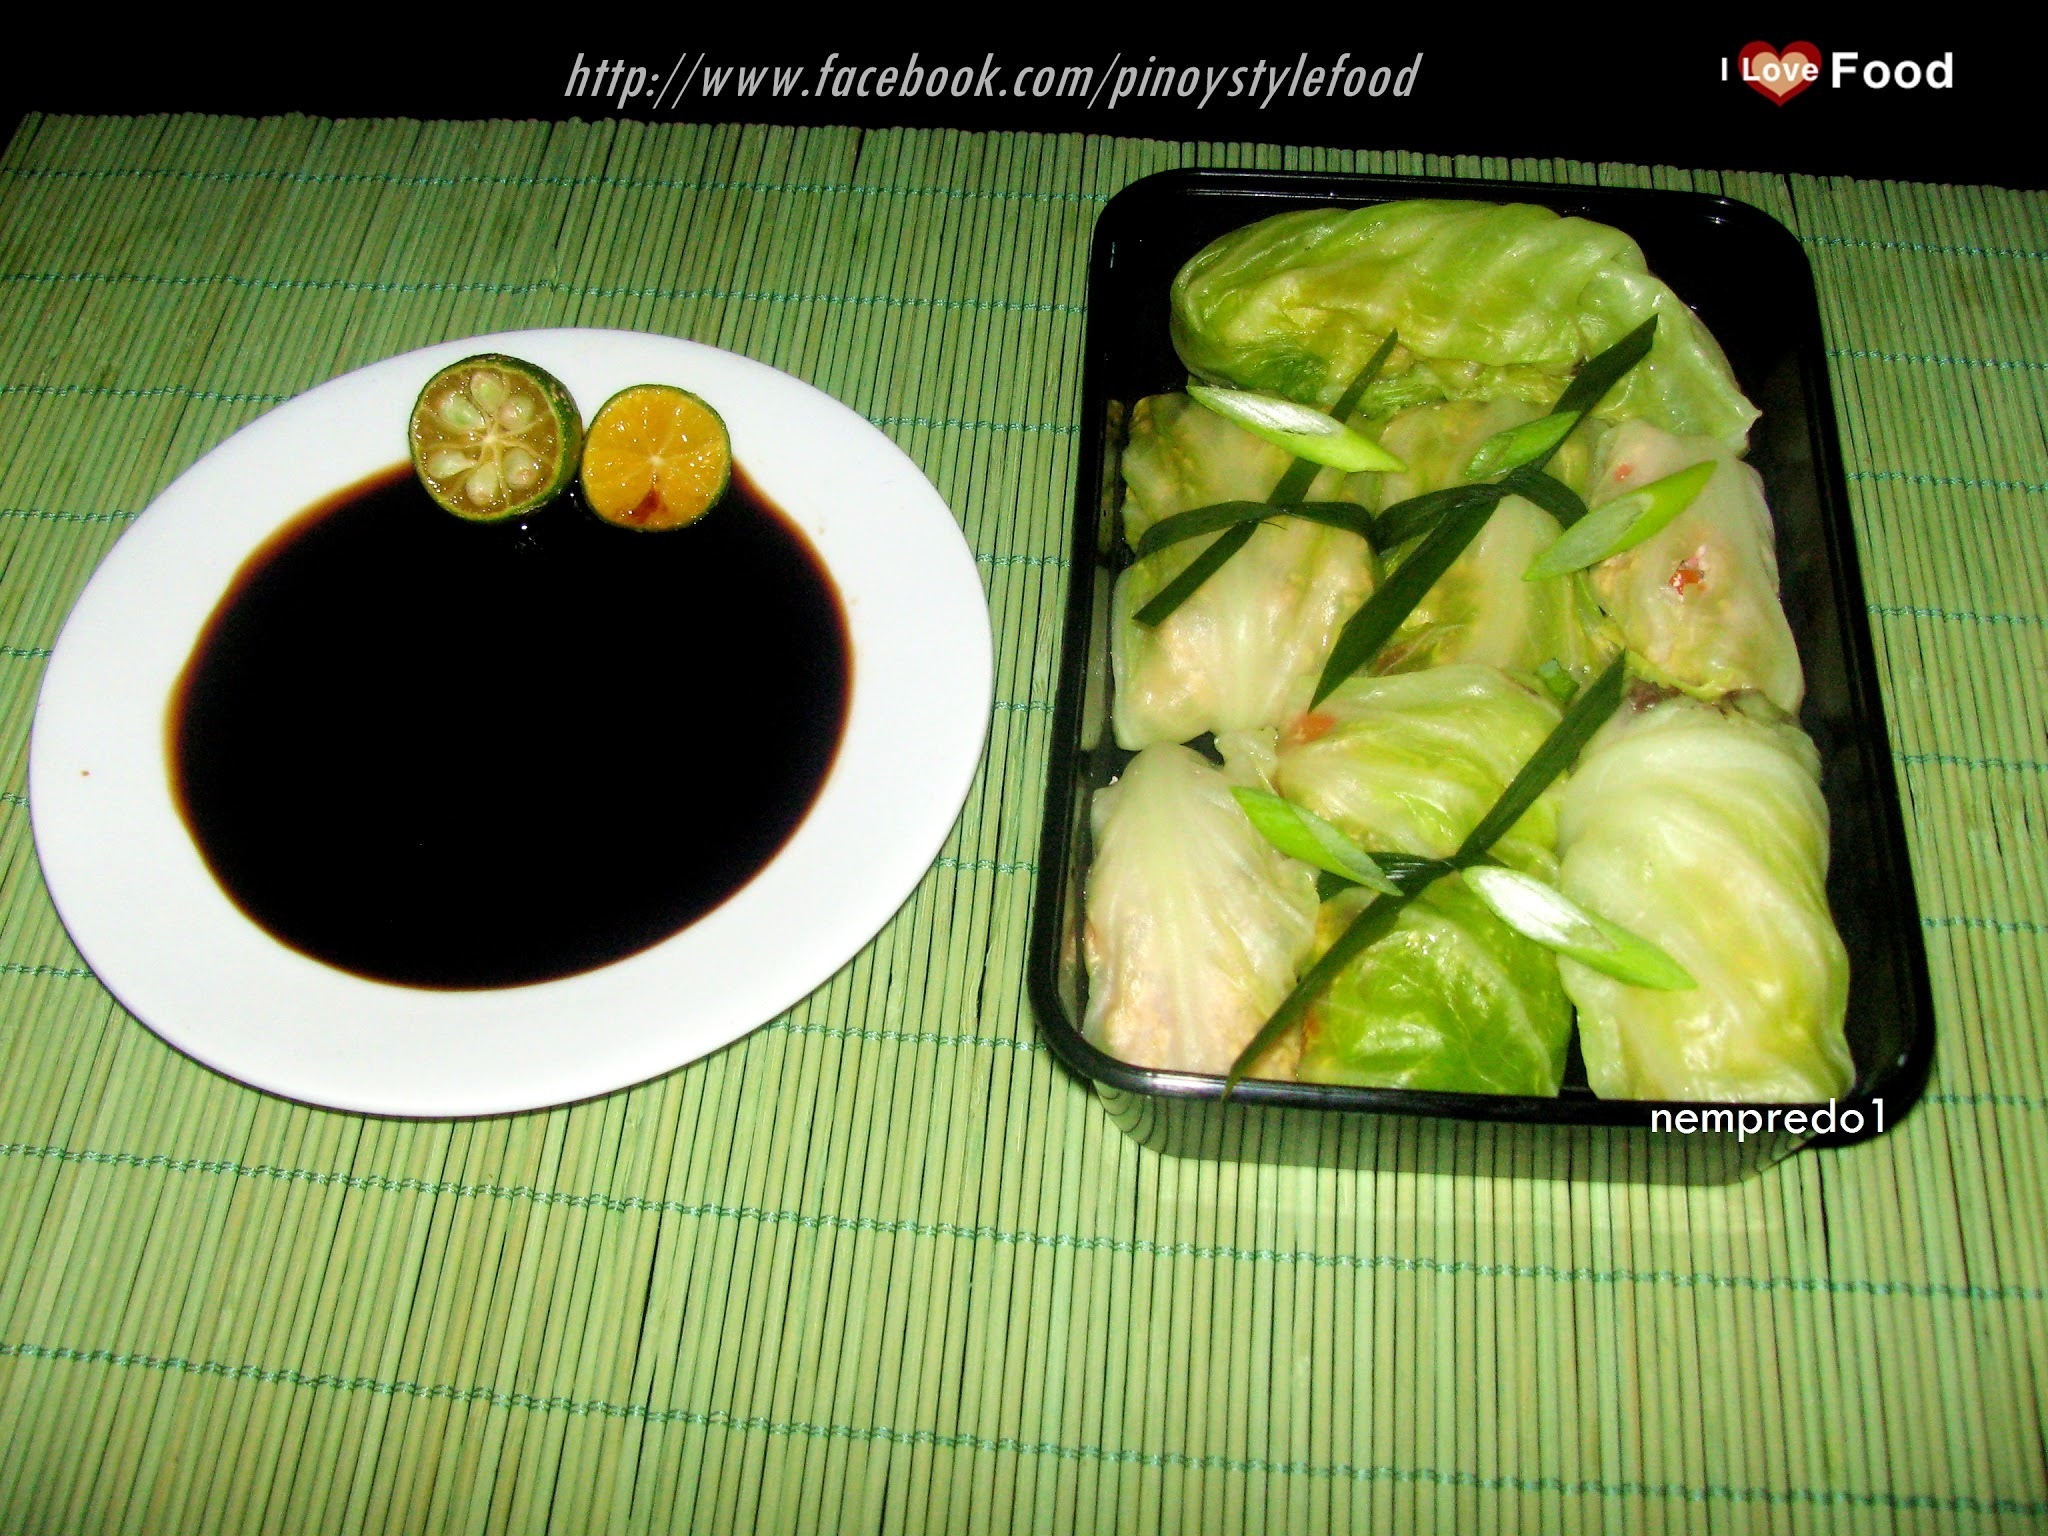 Ground pork wrap in cabbage leaves